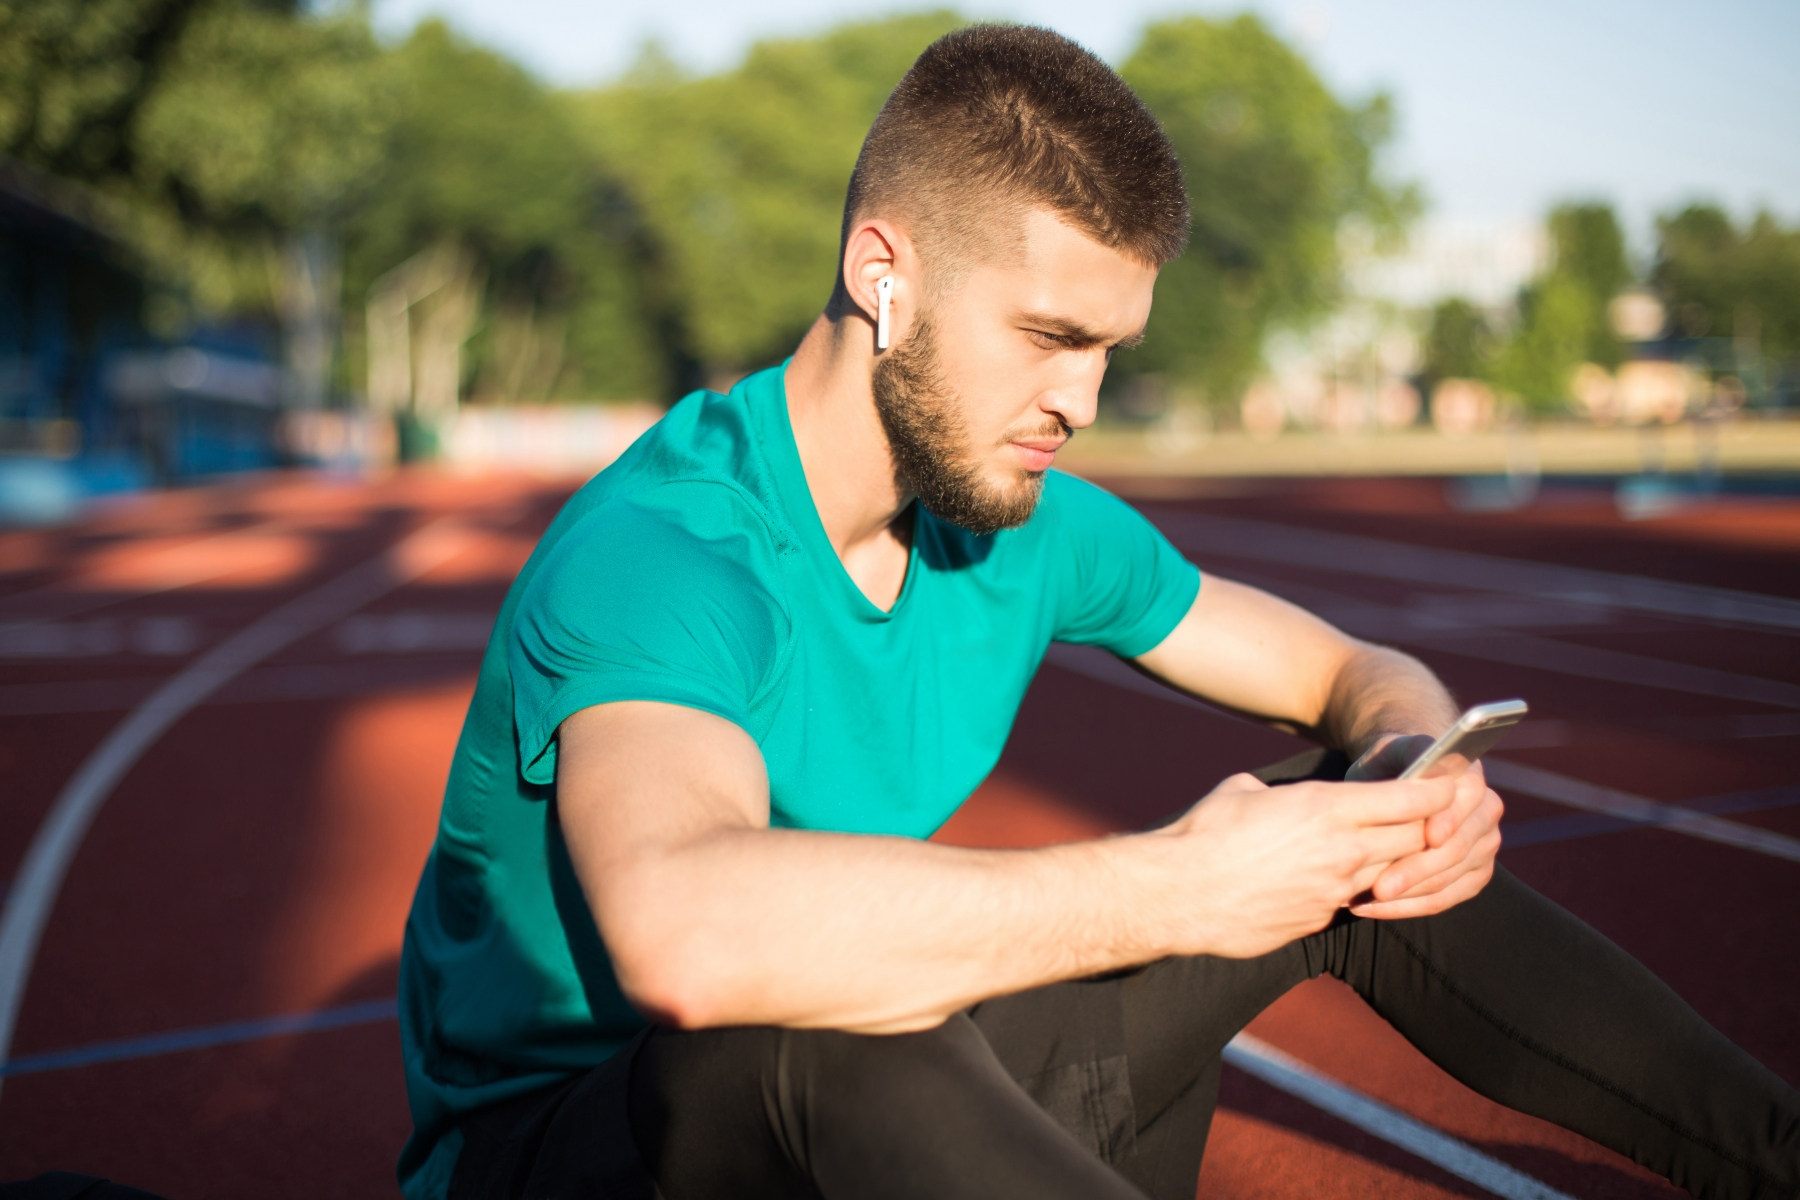 Portrait of man in wireless earphones thoughtfully using cellphone while spending time on running track of stadium